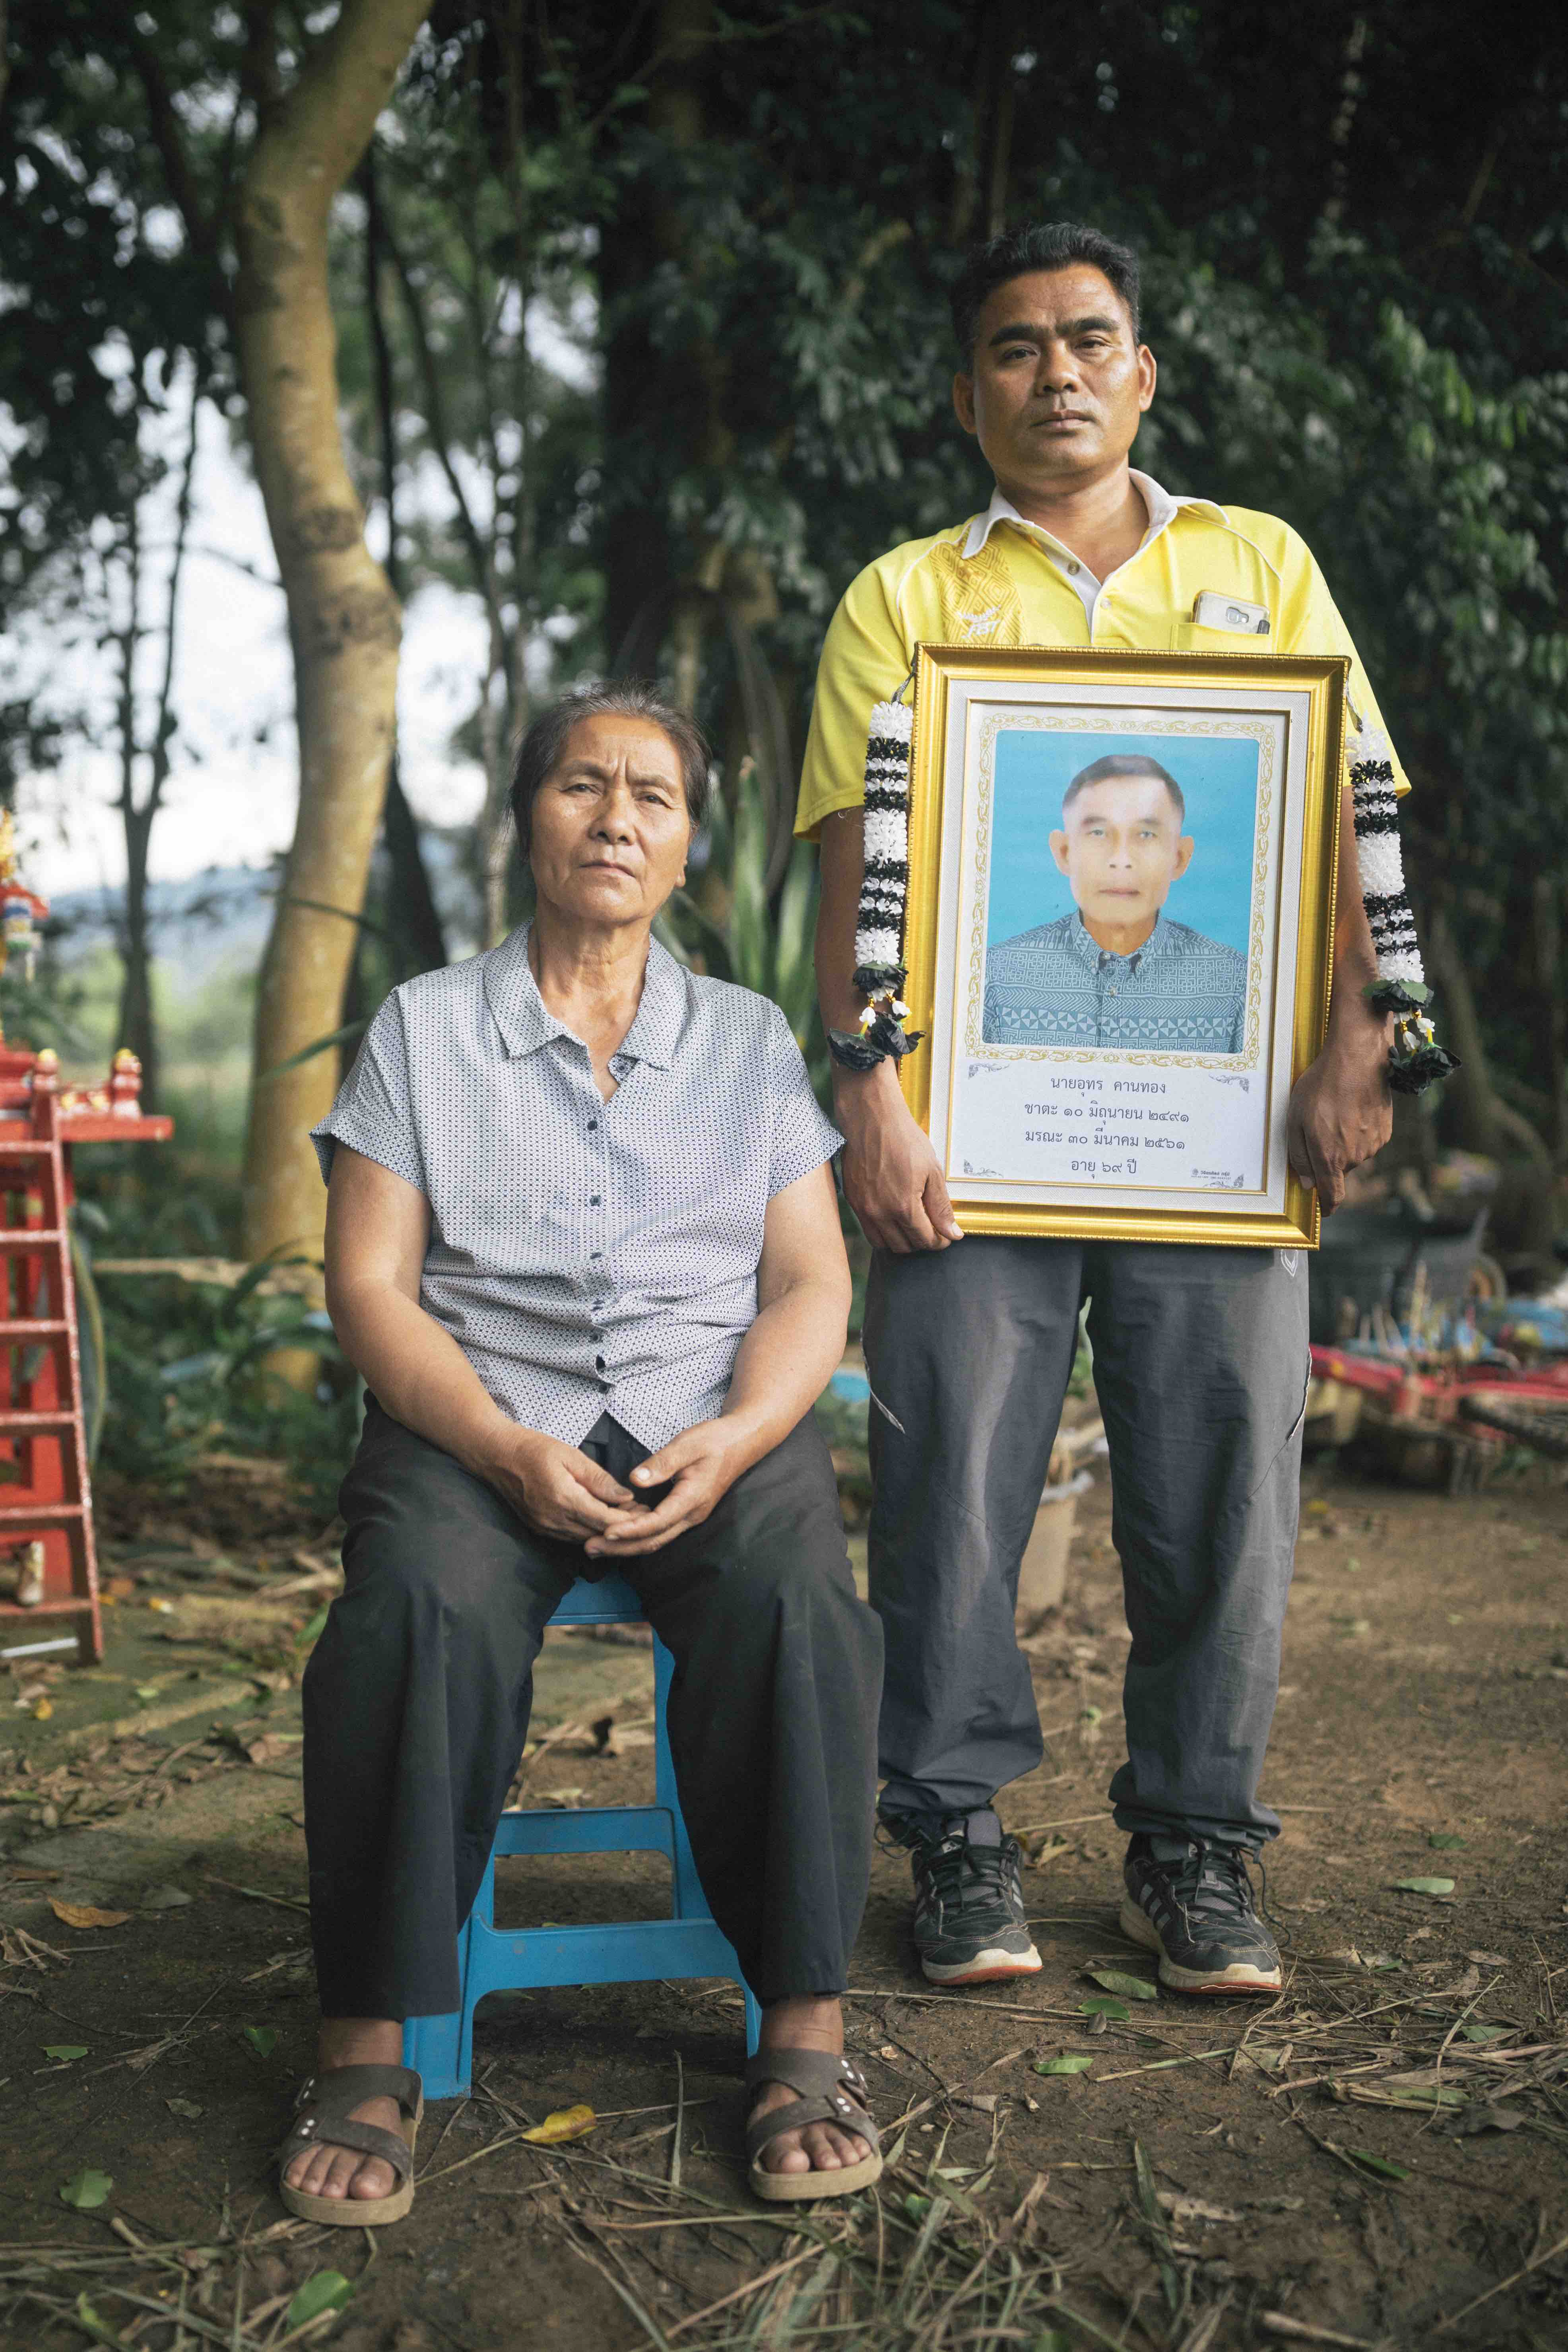 Titipan Khanthong and his mother with a portrait of the late father, Uthorn, who was killed by an elephant in his fields on the border of Khao Yai National Forest.